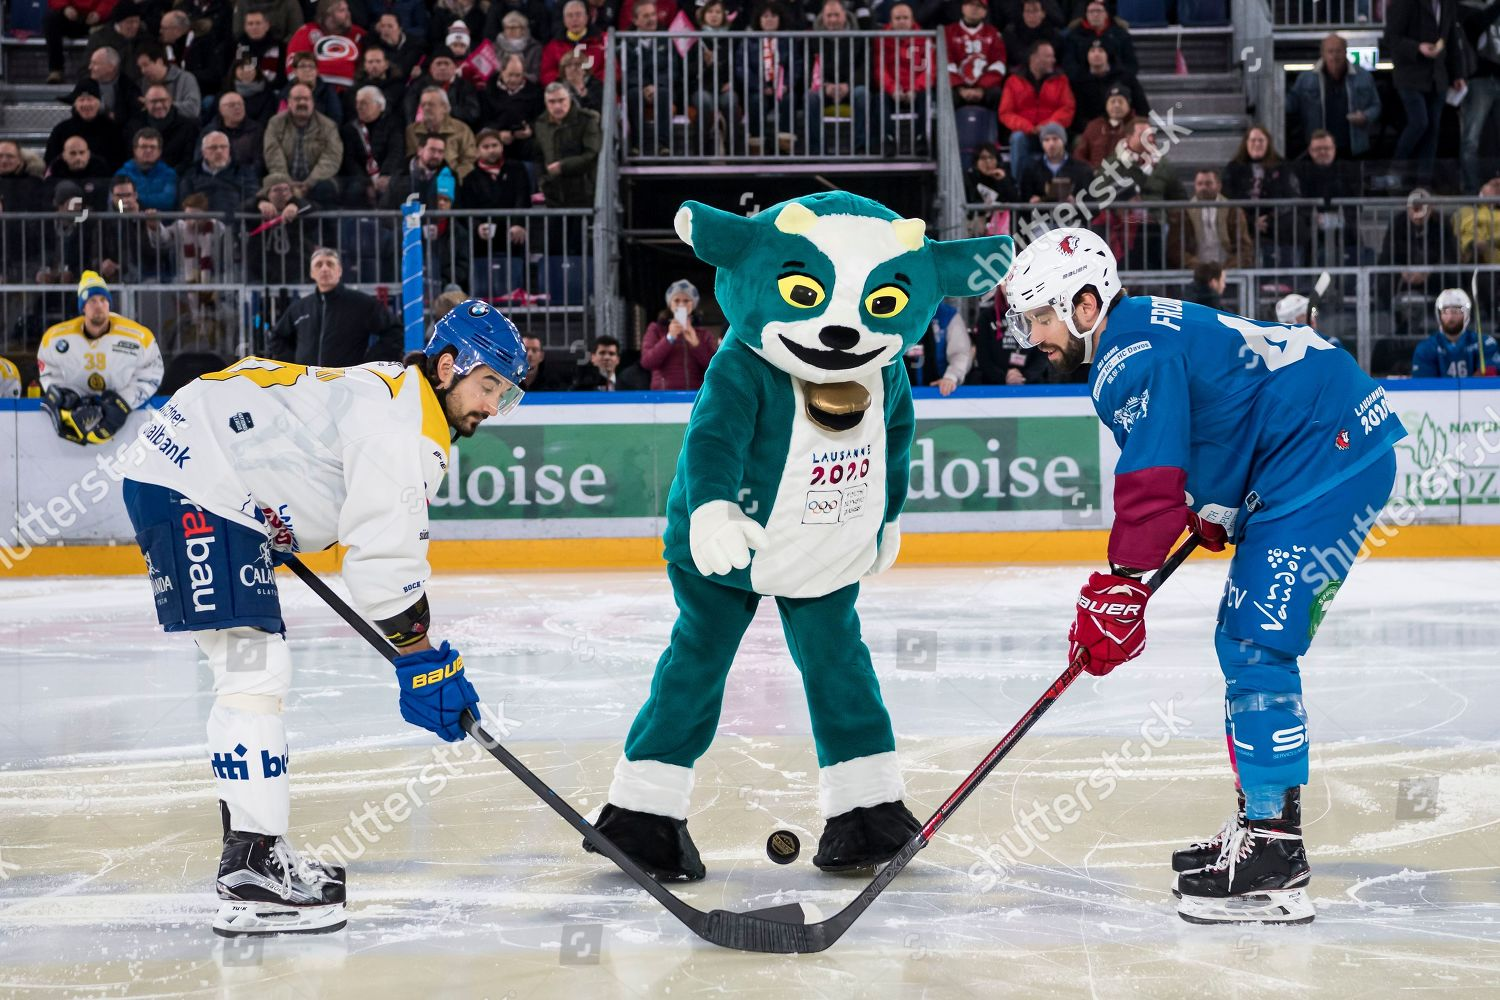 Ice Hockey At The 2020 Olympic Winter Games.Yodli C Mascot Winter Youth Olympic Games Editorial Stock